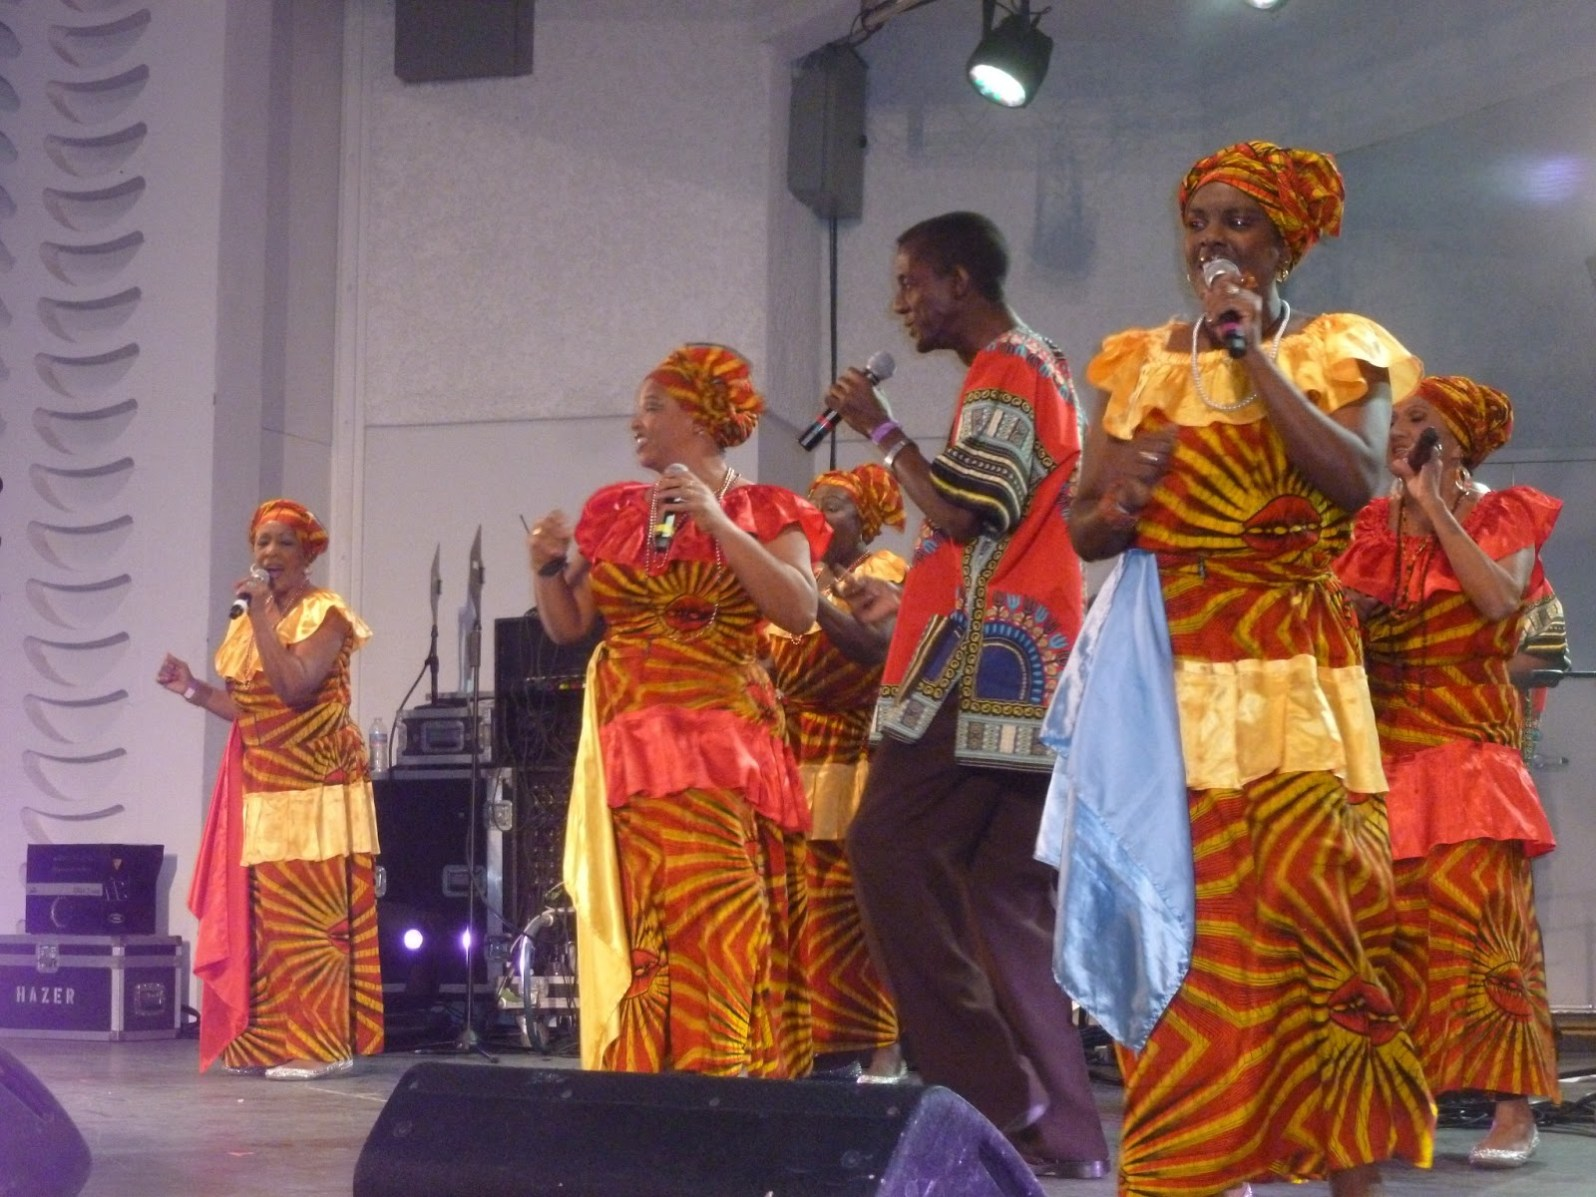 Grupo Vocal Desandann, a Haitian-Cuban group were the Light Project's first Cuban musical guests. (Courtesy of Miami Light Project)